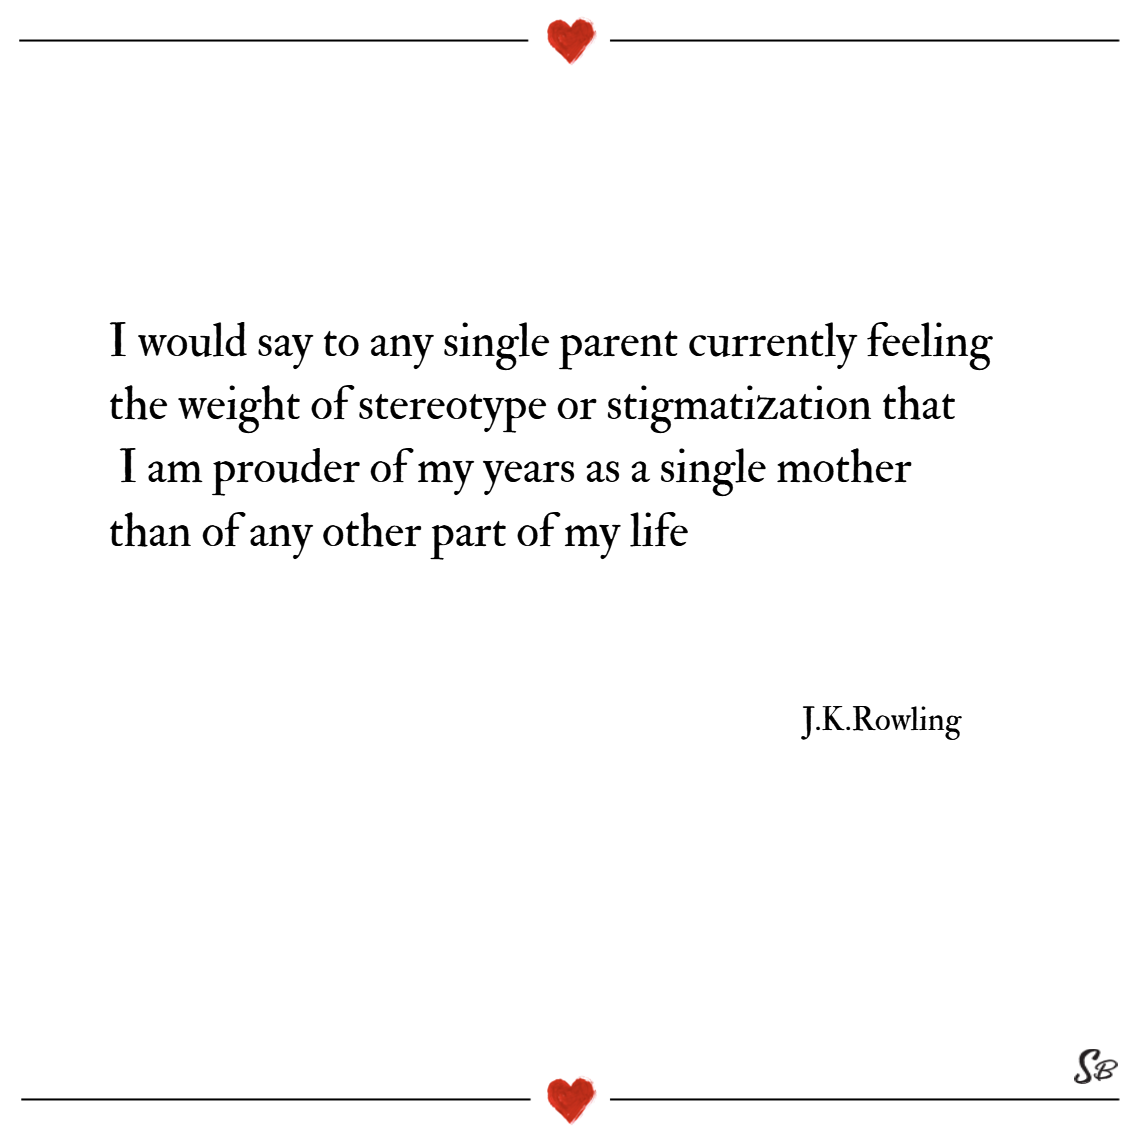 I would say to any single parent currently feeling the weight of stereotype or stigmatization that i am prouder of my years as a single mother than of any other part of my life. – j.k. rowling